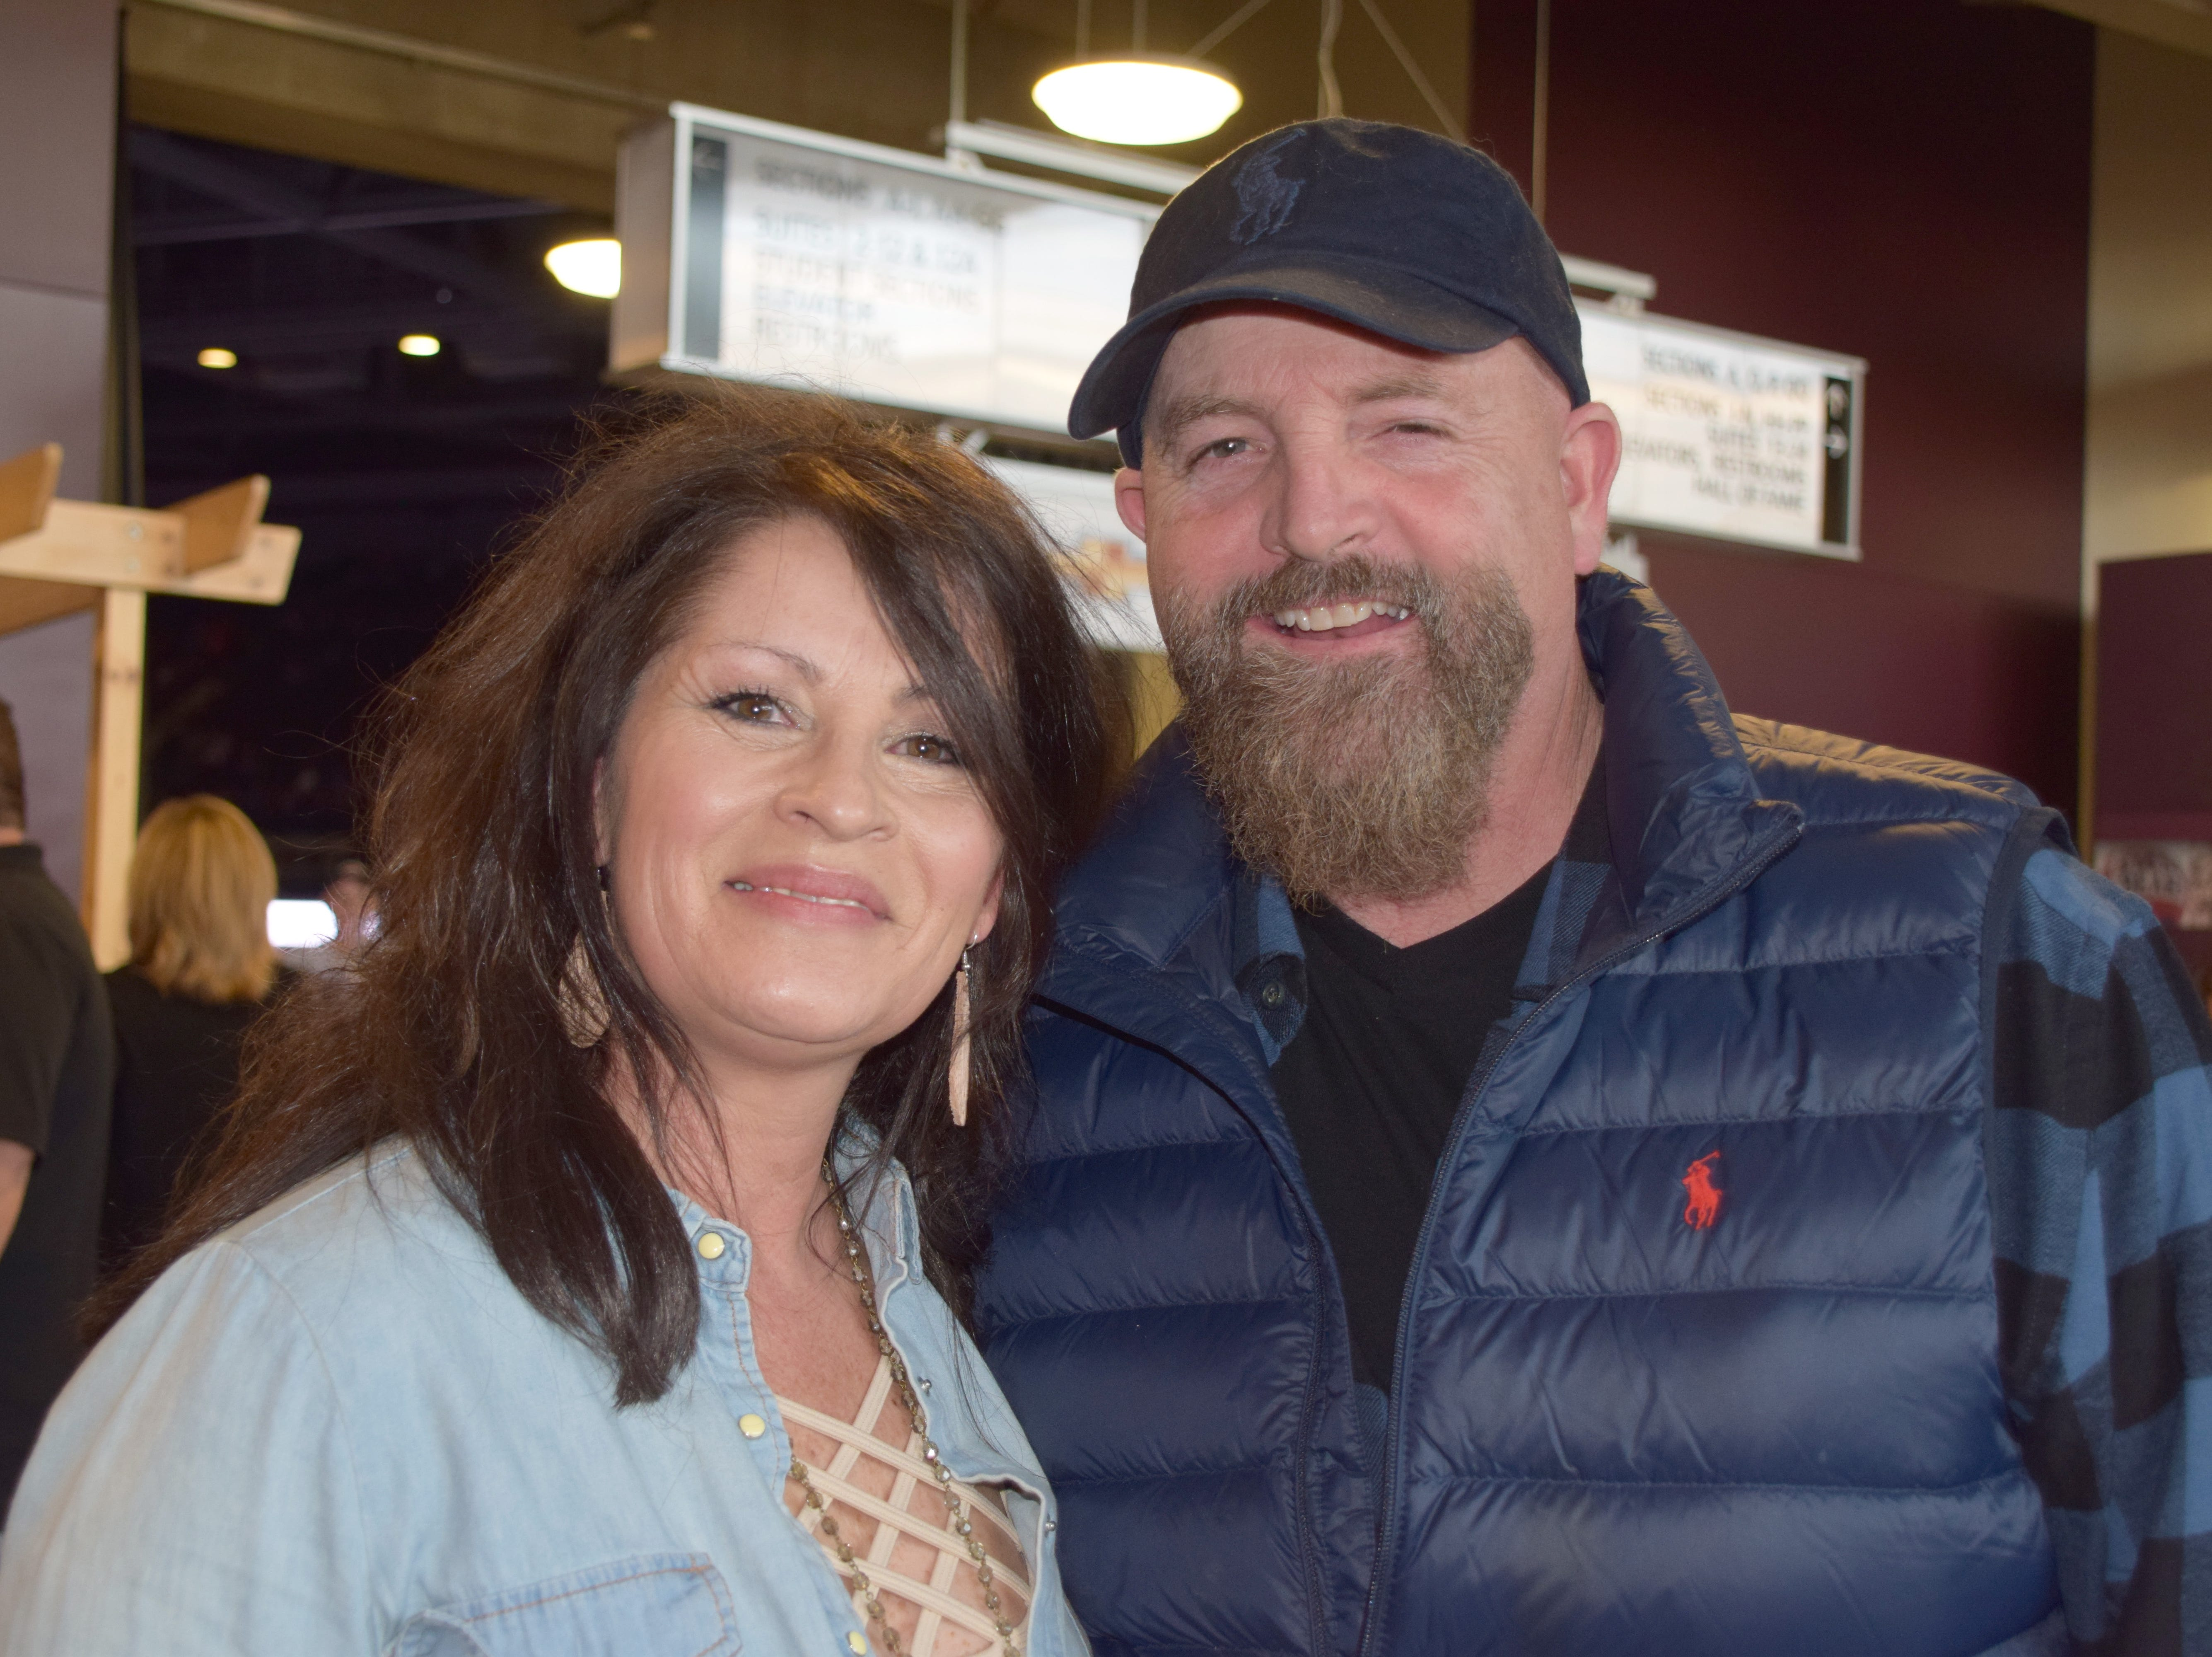 Shelly and Keith Waugh